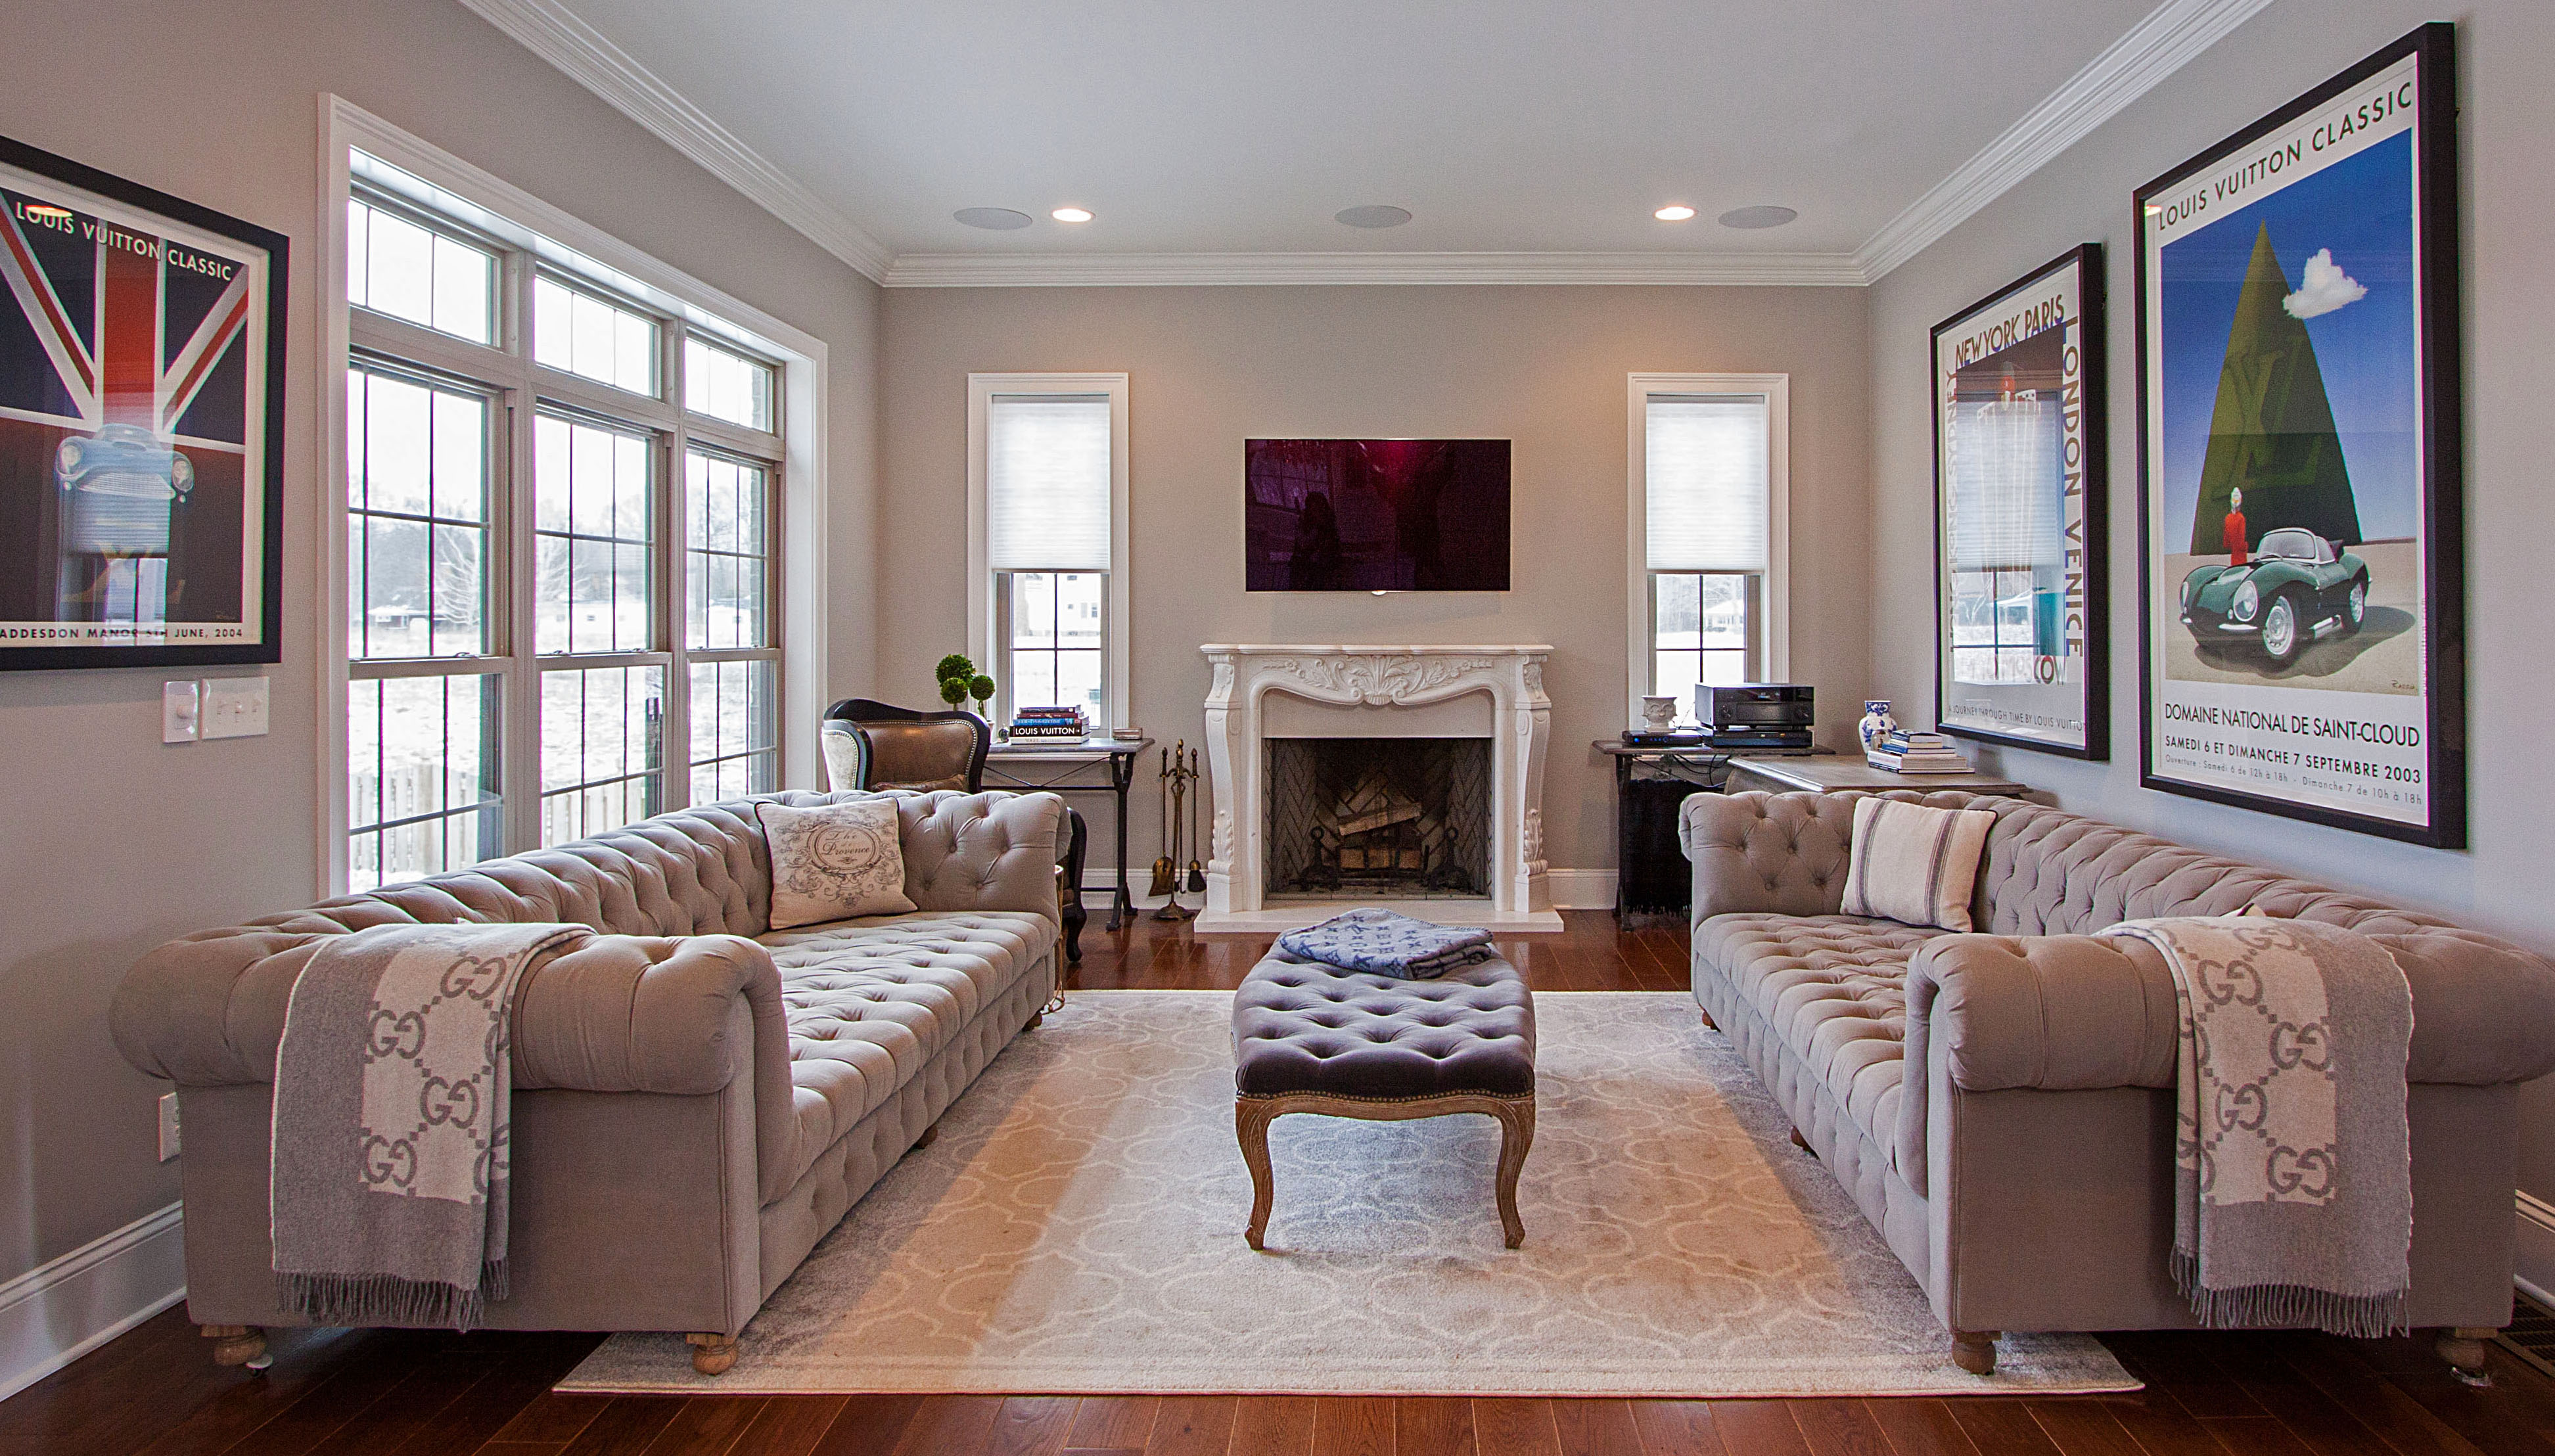 Great room additions best steps for remodeling small room for Great room additions